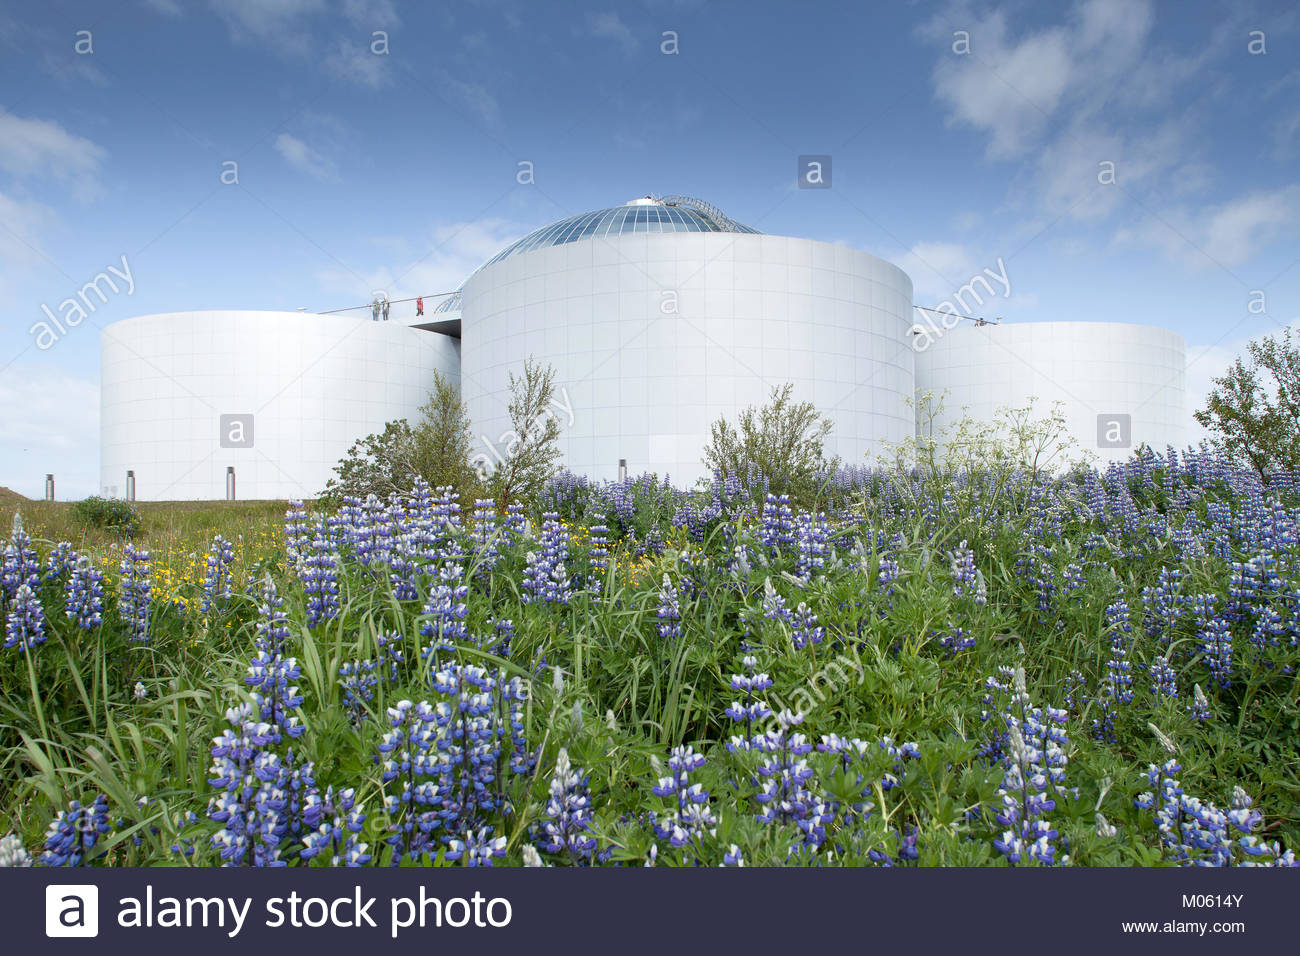 The hot water tanks of 'Perlan' provide geothermal energy to the city of Reykjavik, Iceland - Stock Image